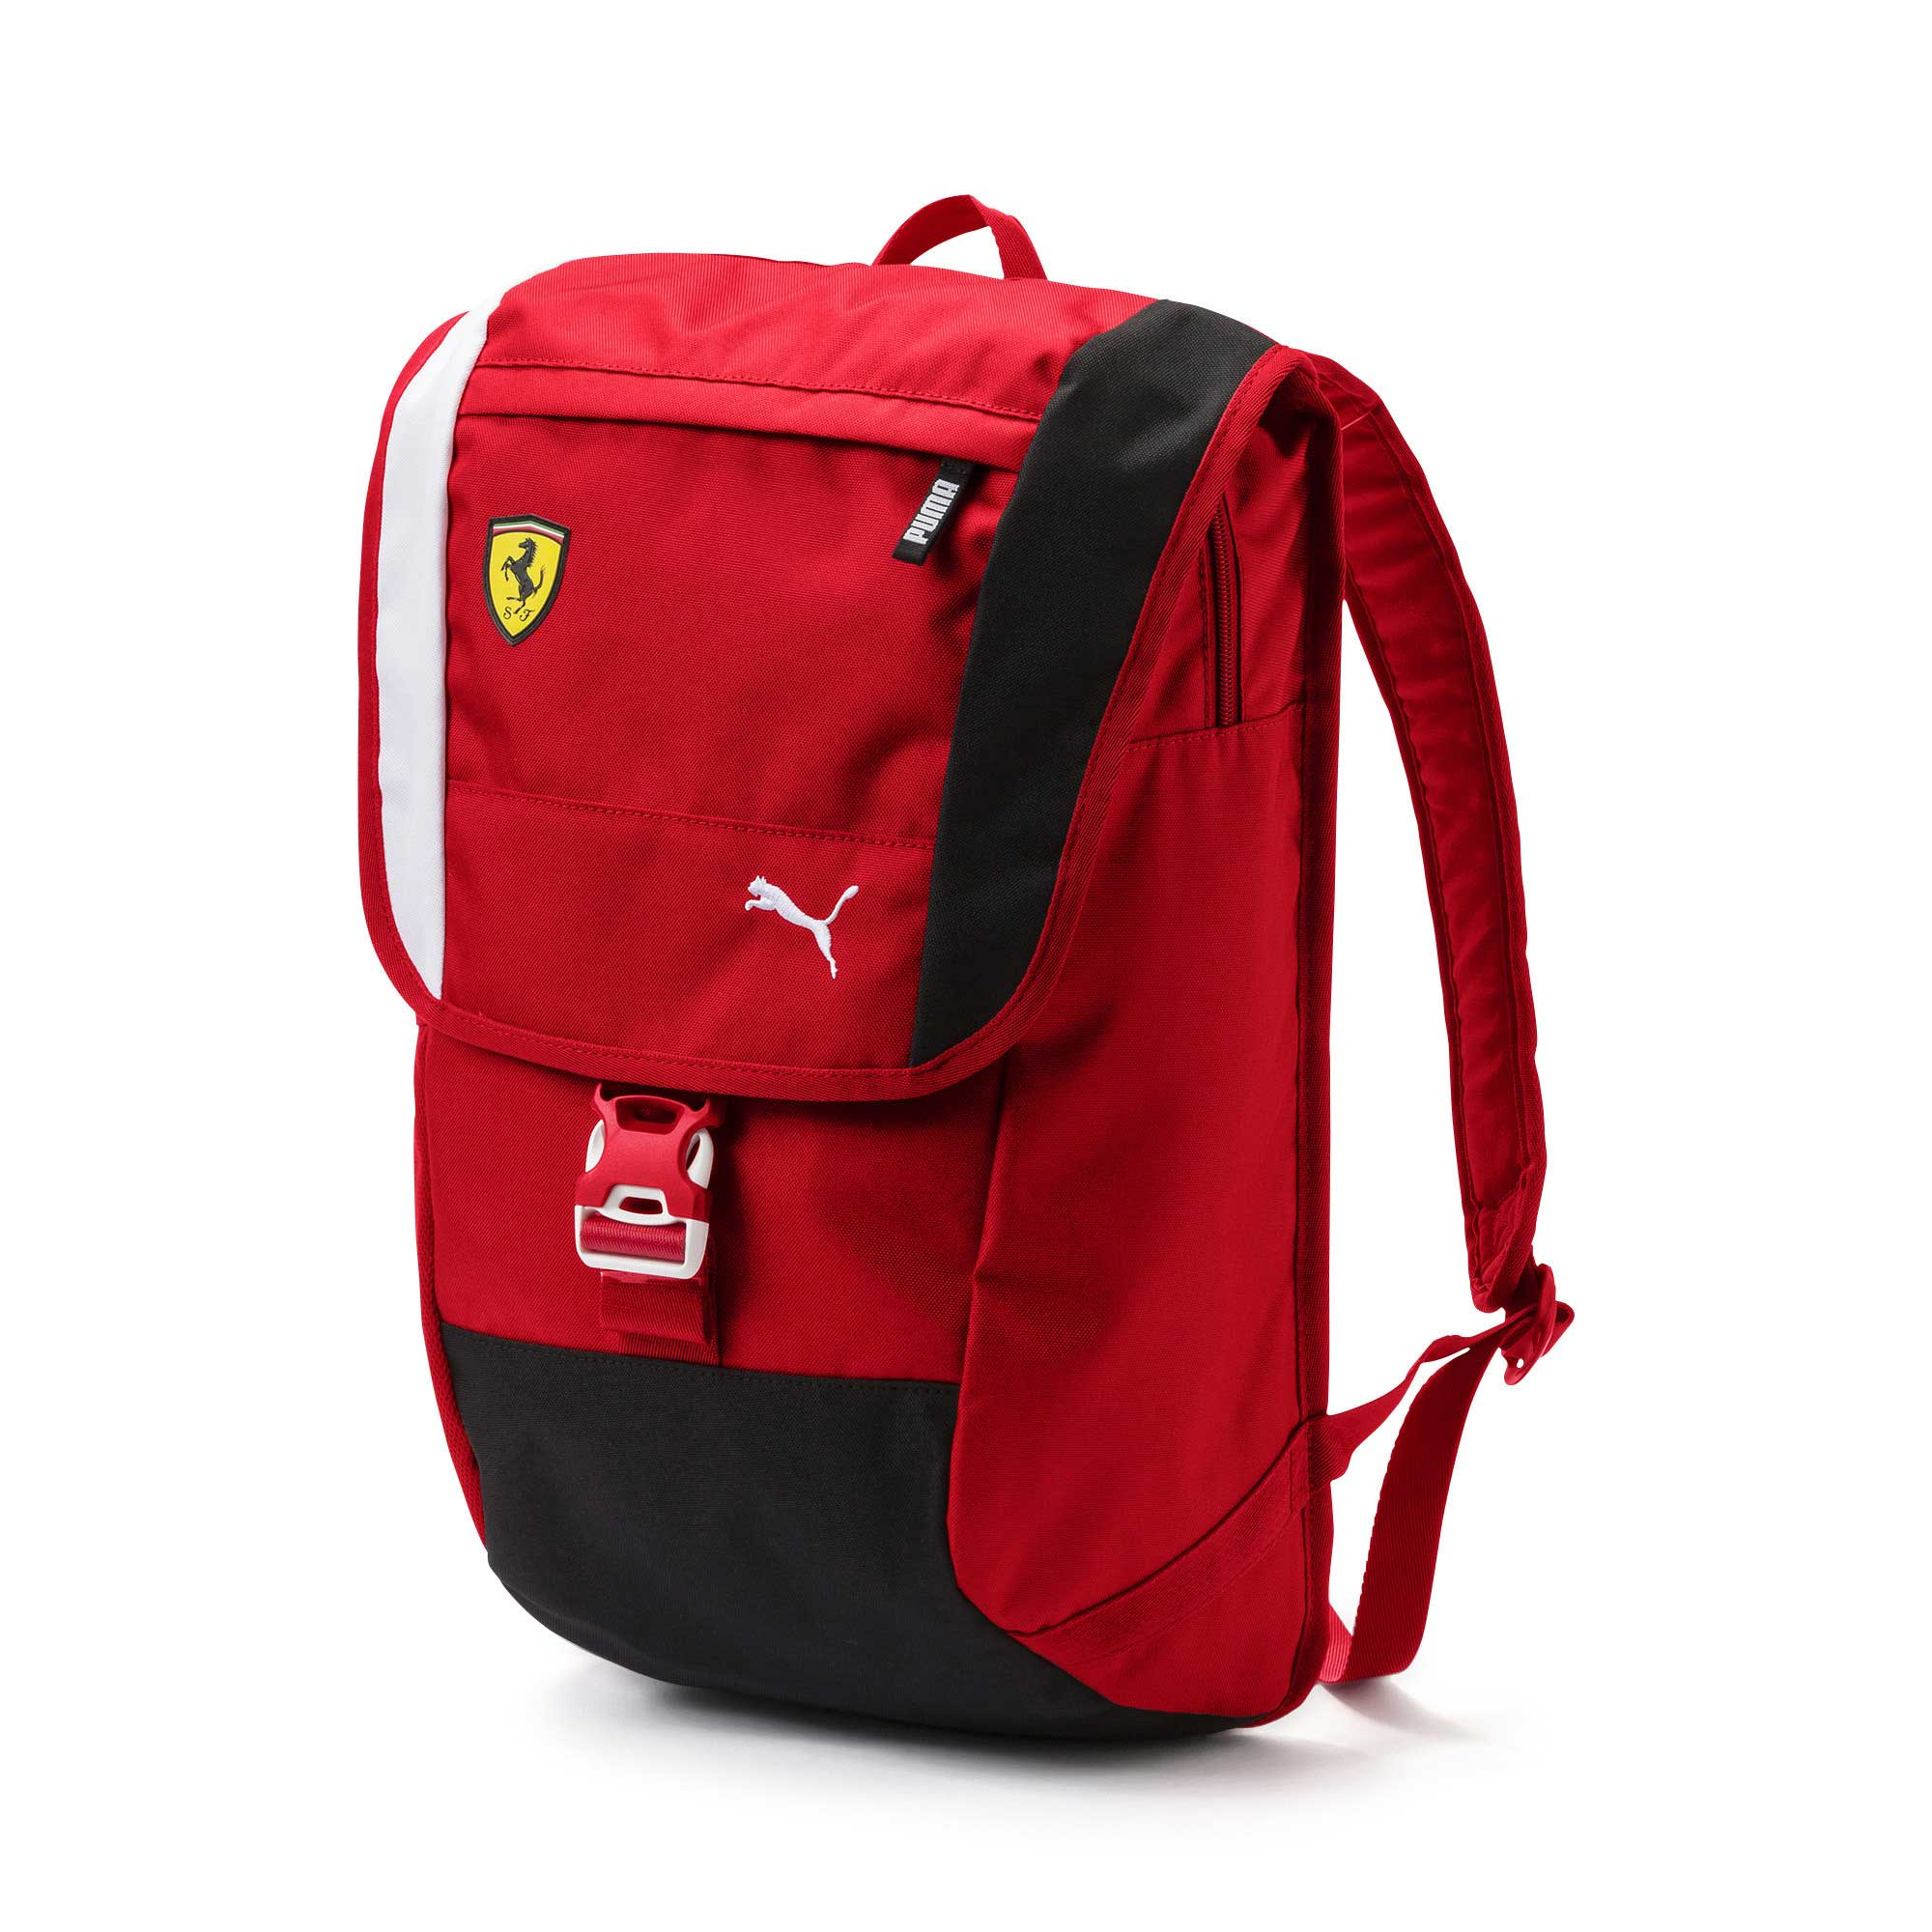 30d48b5454fa Puma Ferrari backpack